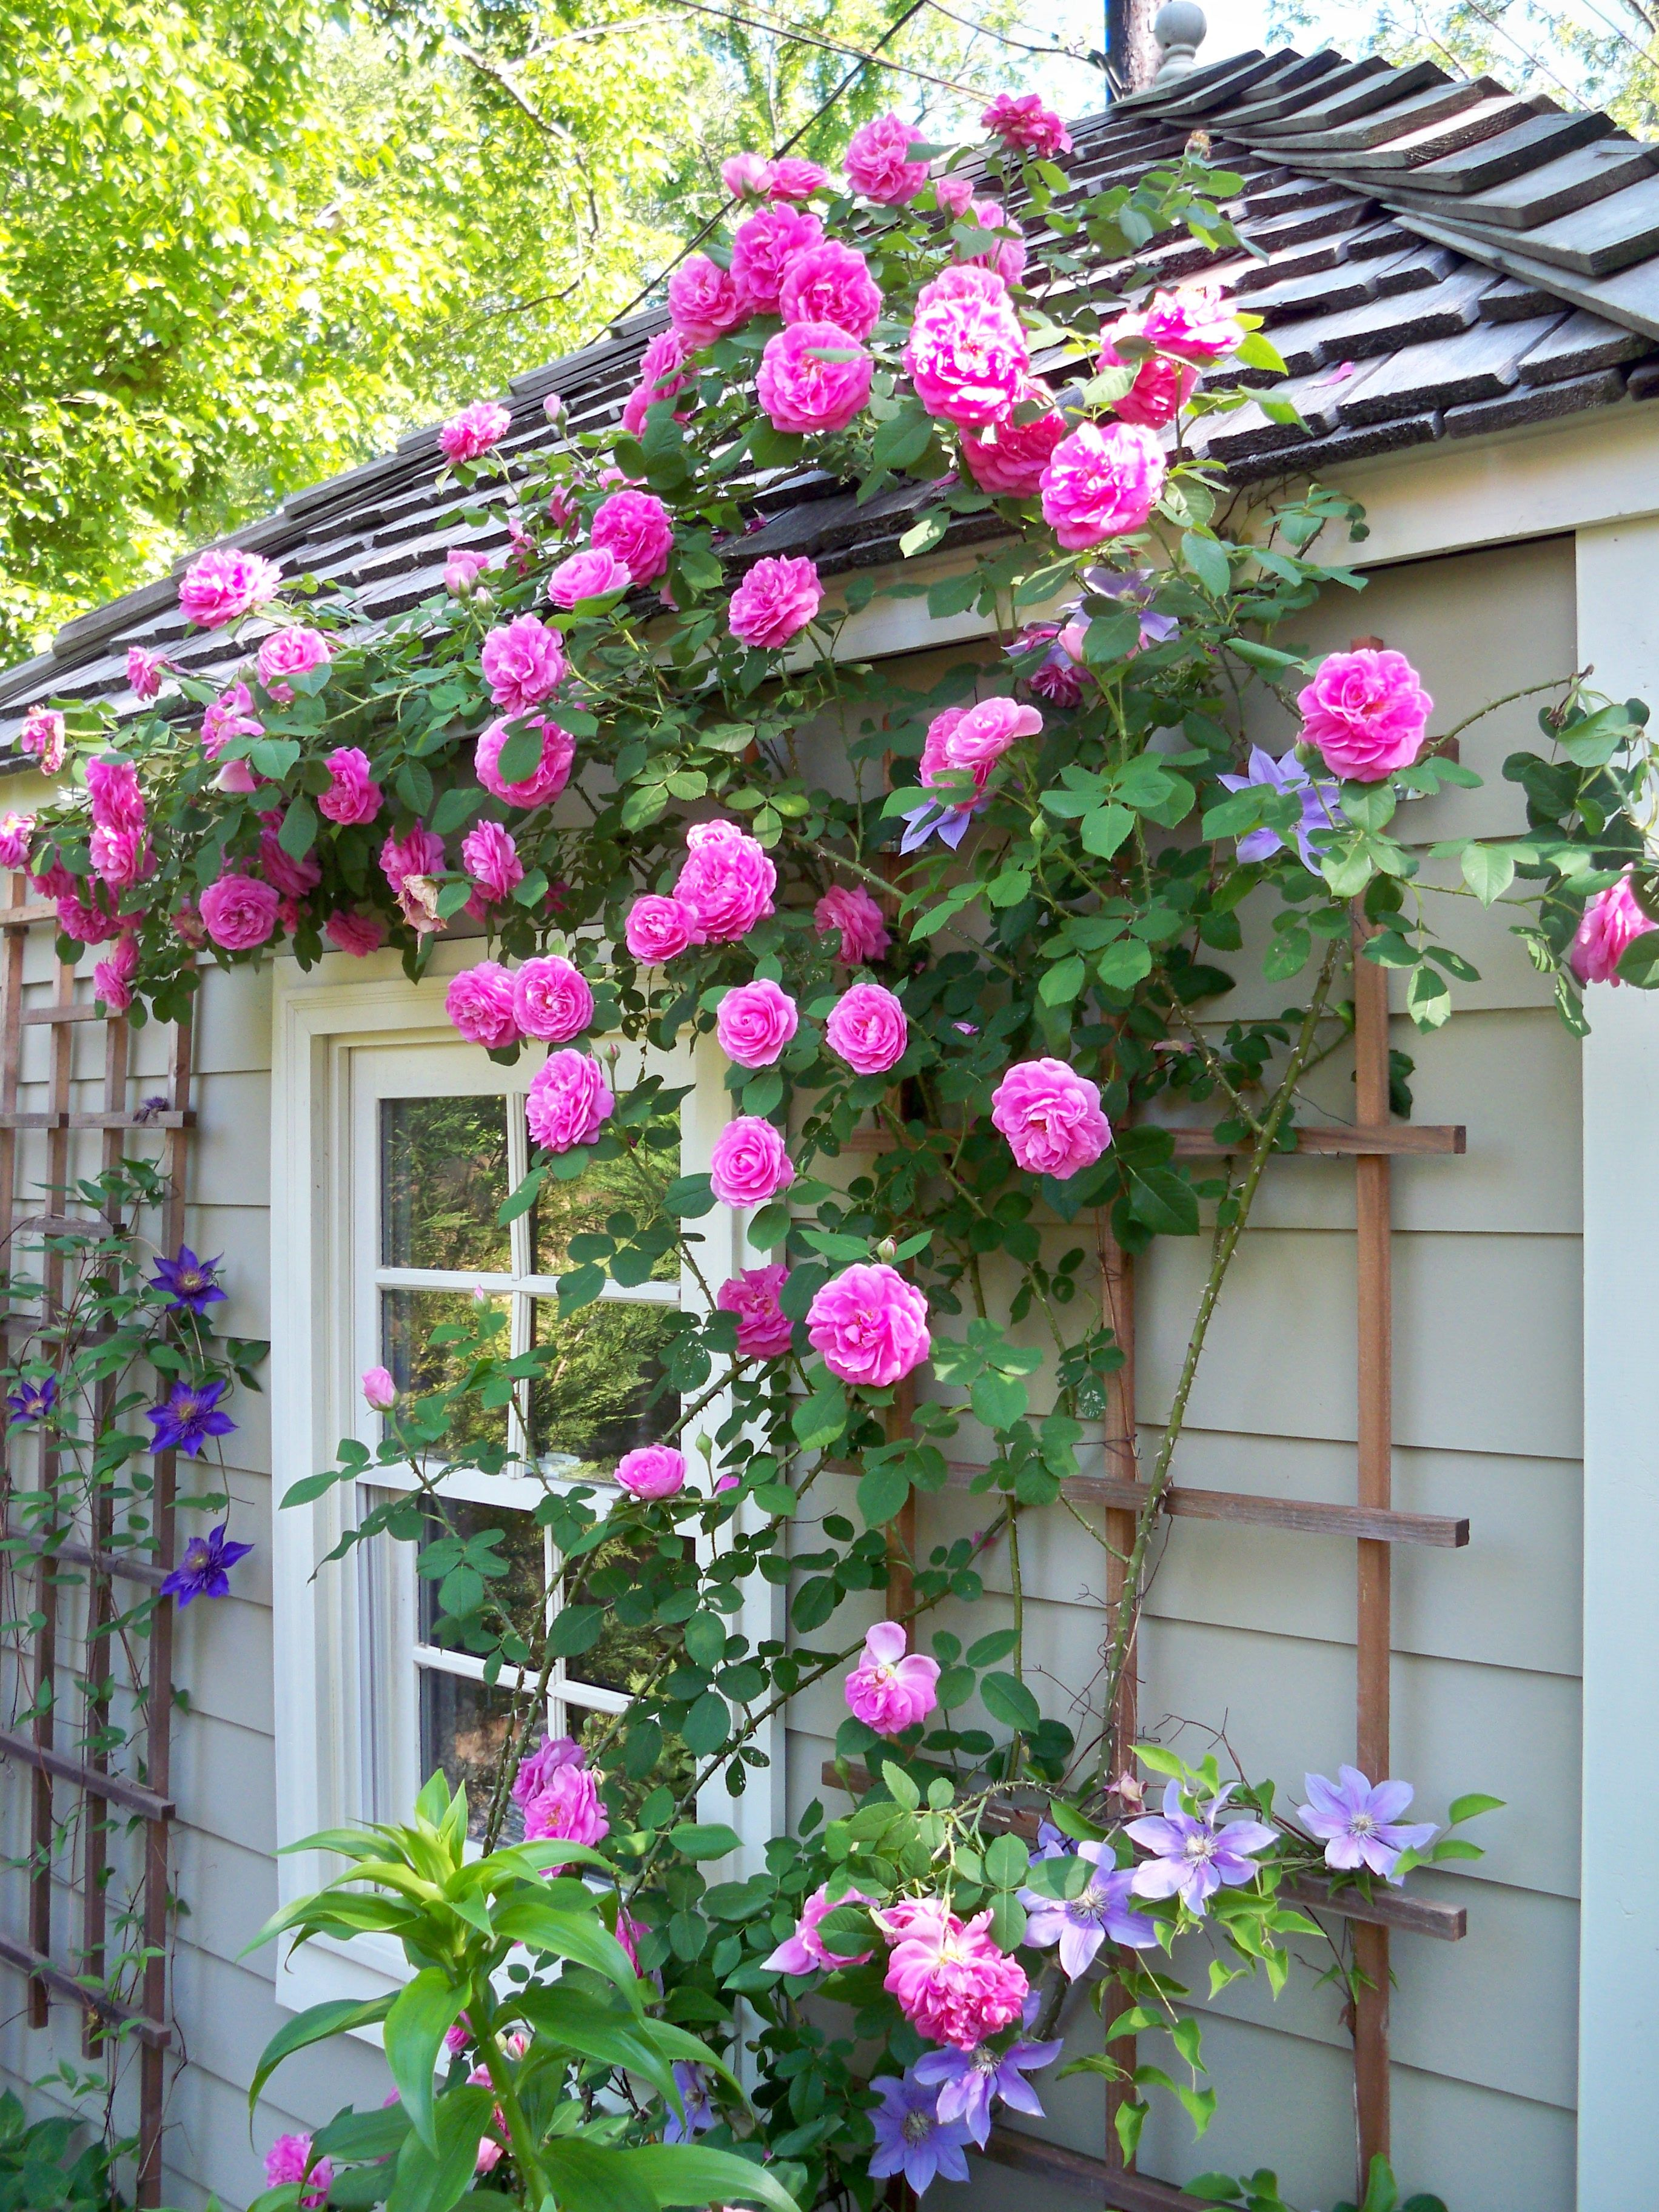 Gertrude jekyll roses and clematis climbing up the garden house gertrude jekyll roses and clematis climbing up the garden house mightylinksfo